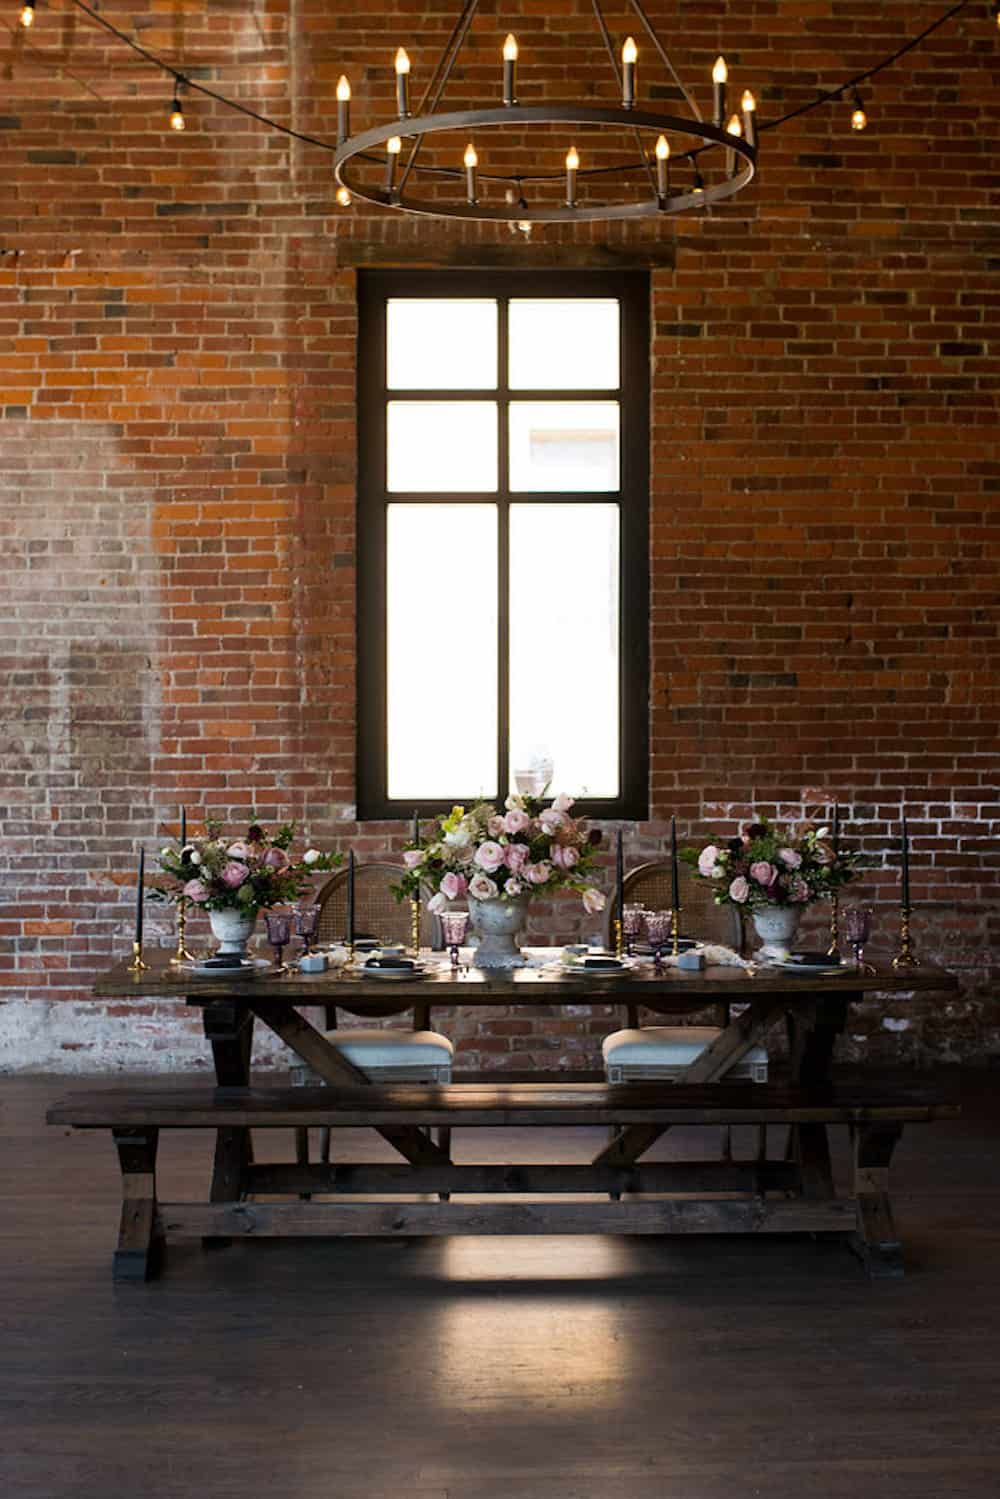 8A StephParkerPhoto-IndustrialRomance-1